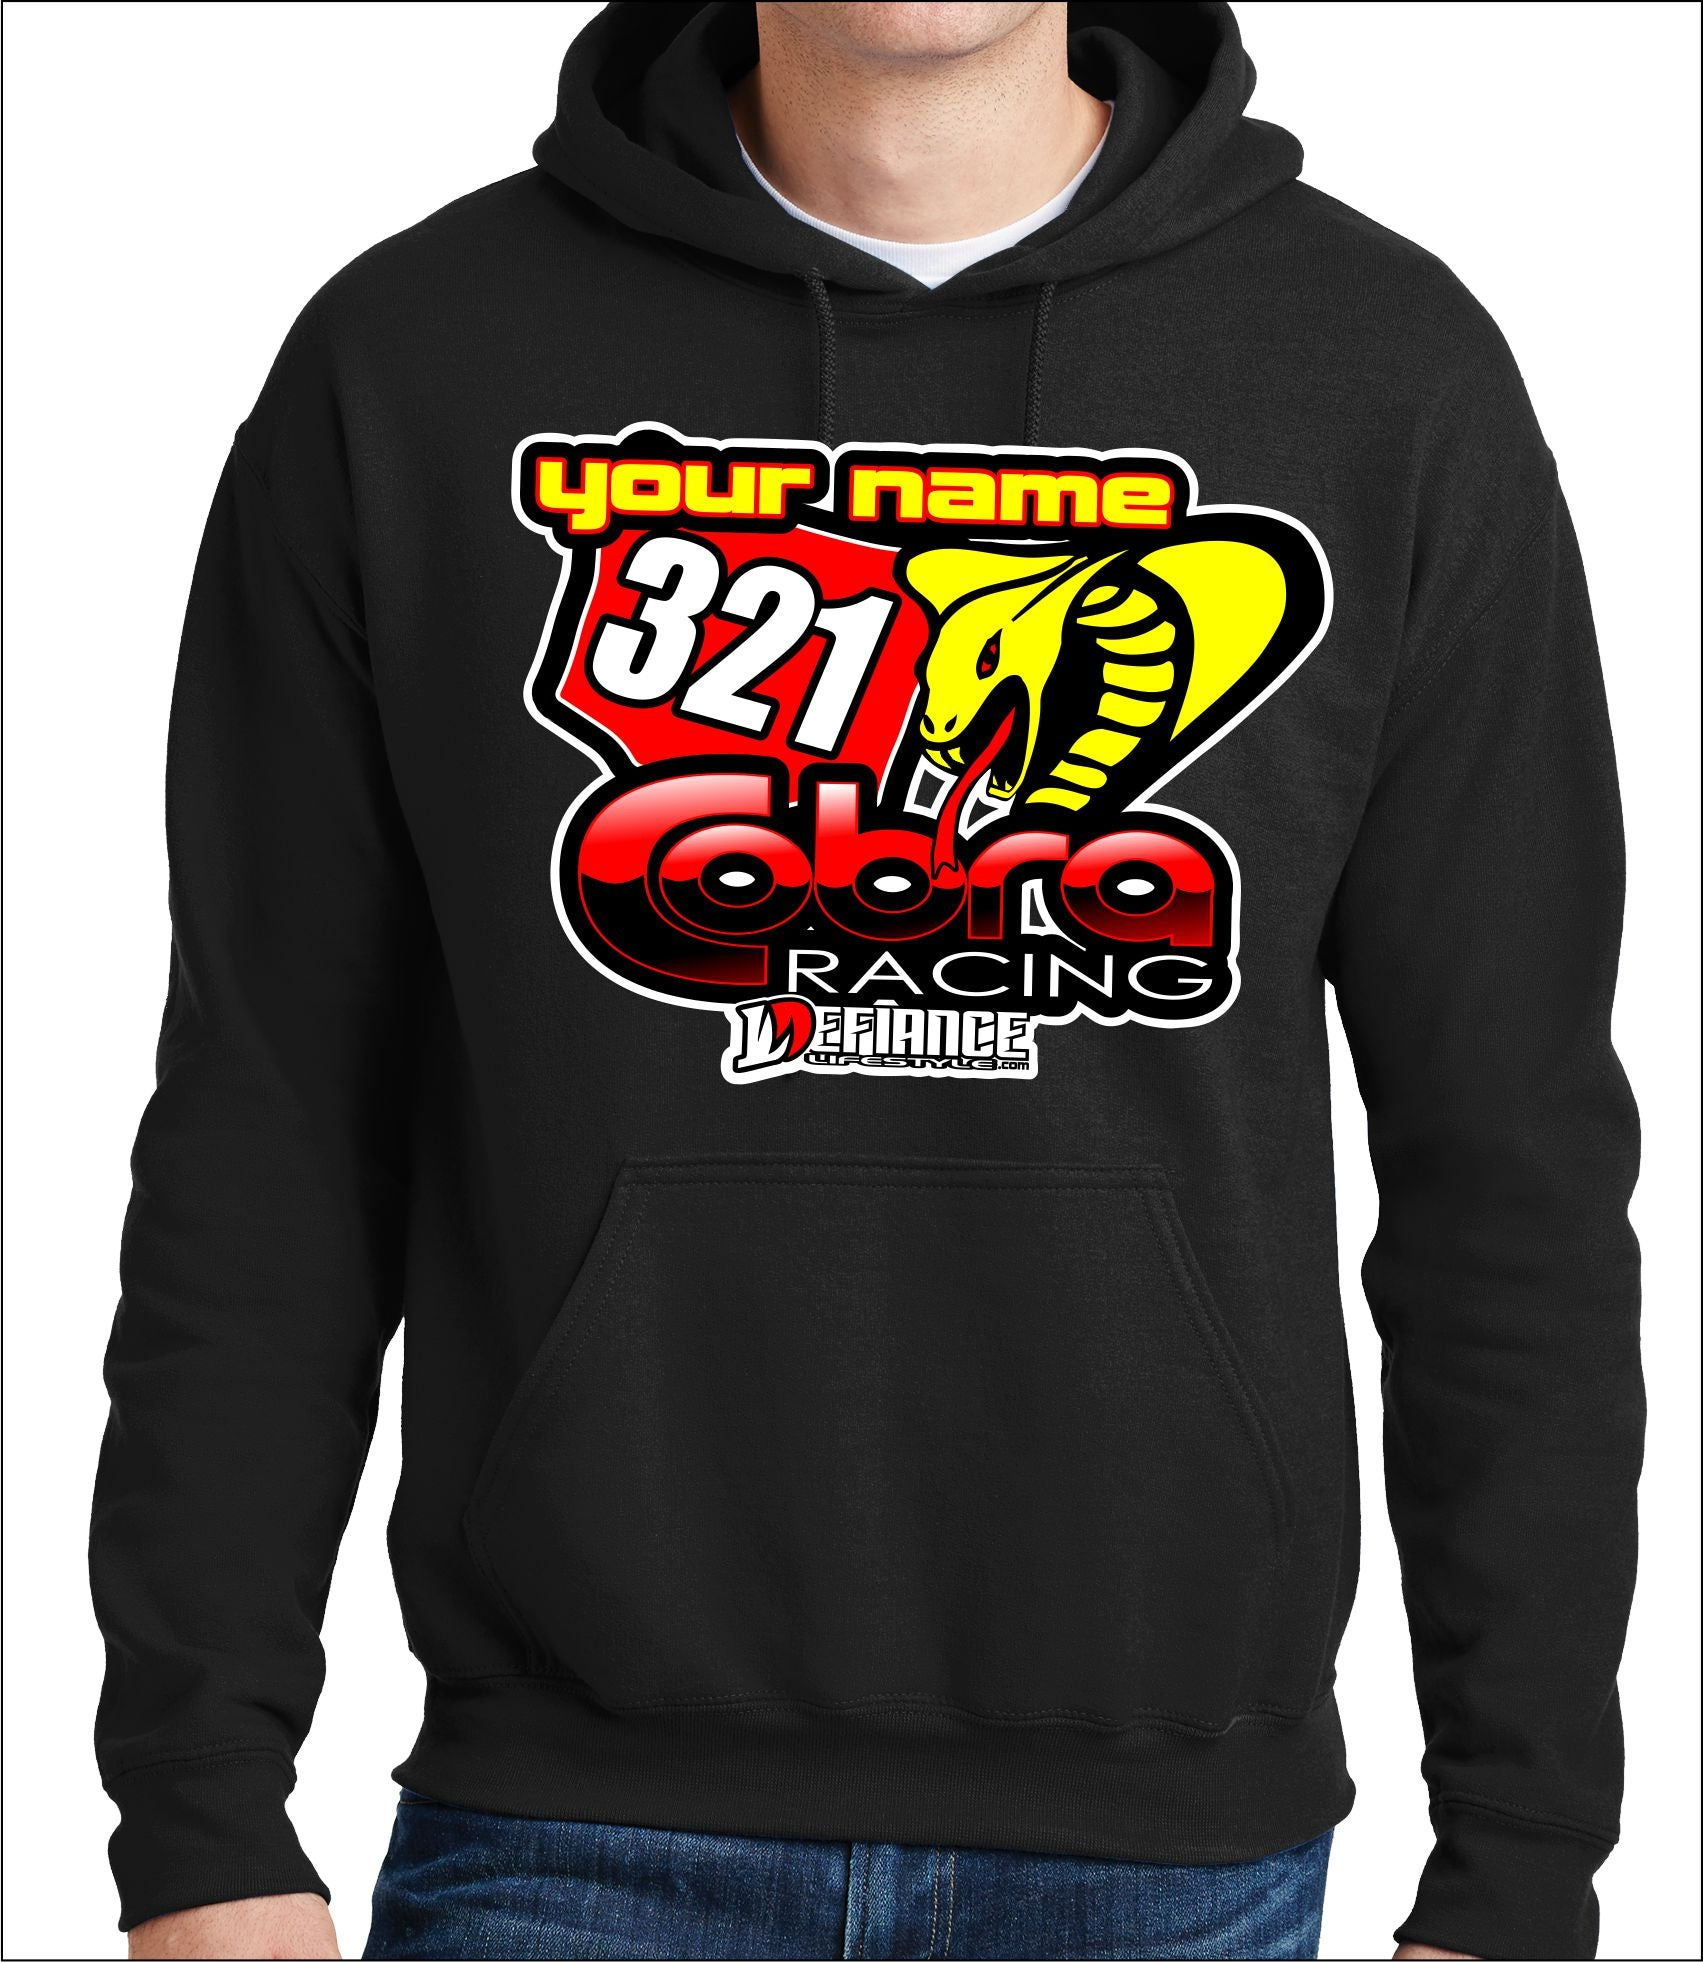 Cobra National Support sweatshirt - Defiance Lifestyle, Race Apparel - Casual to Custom